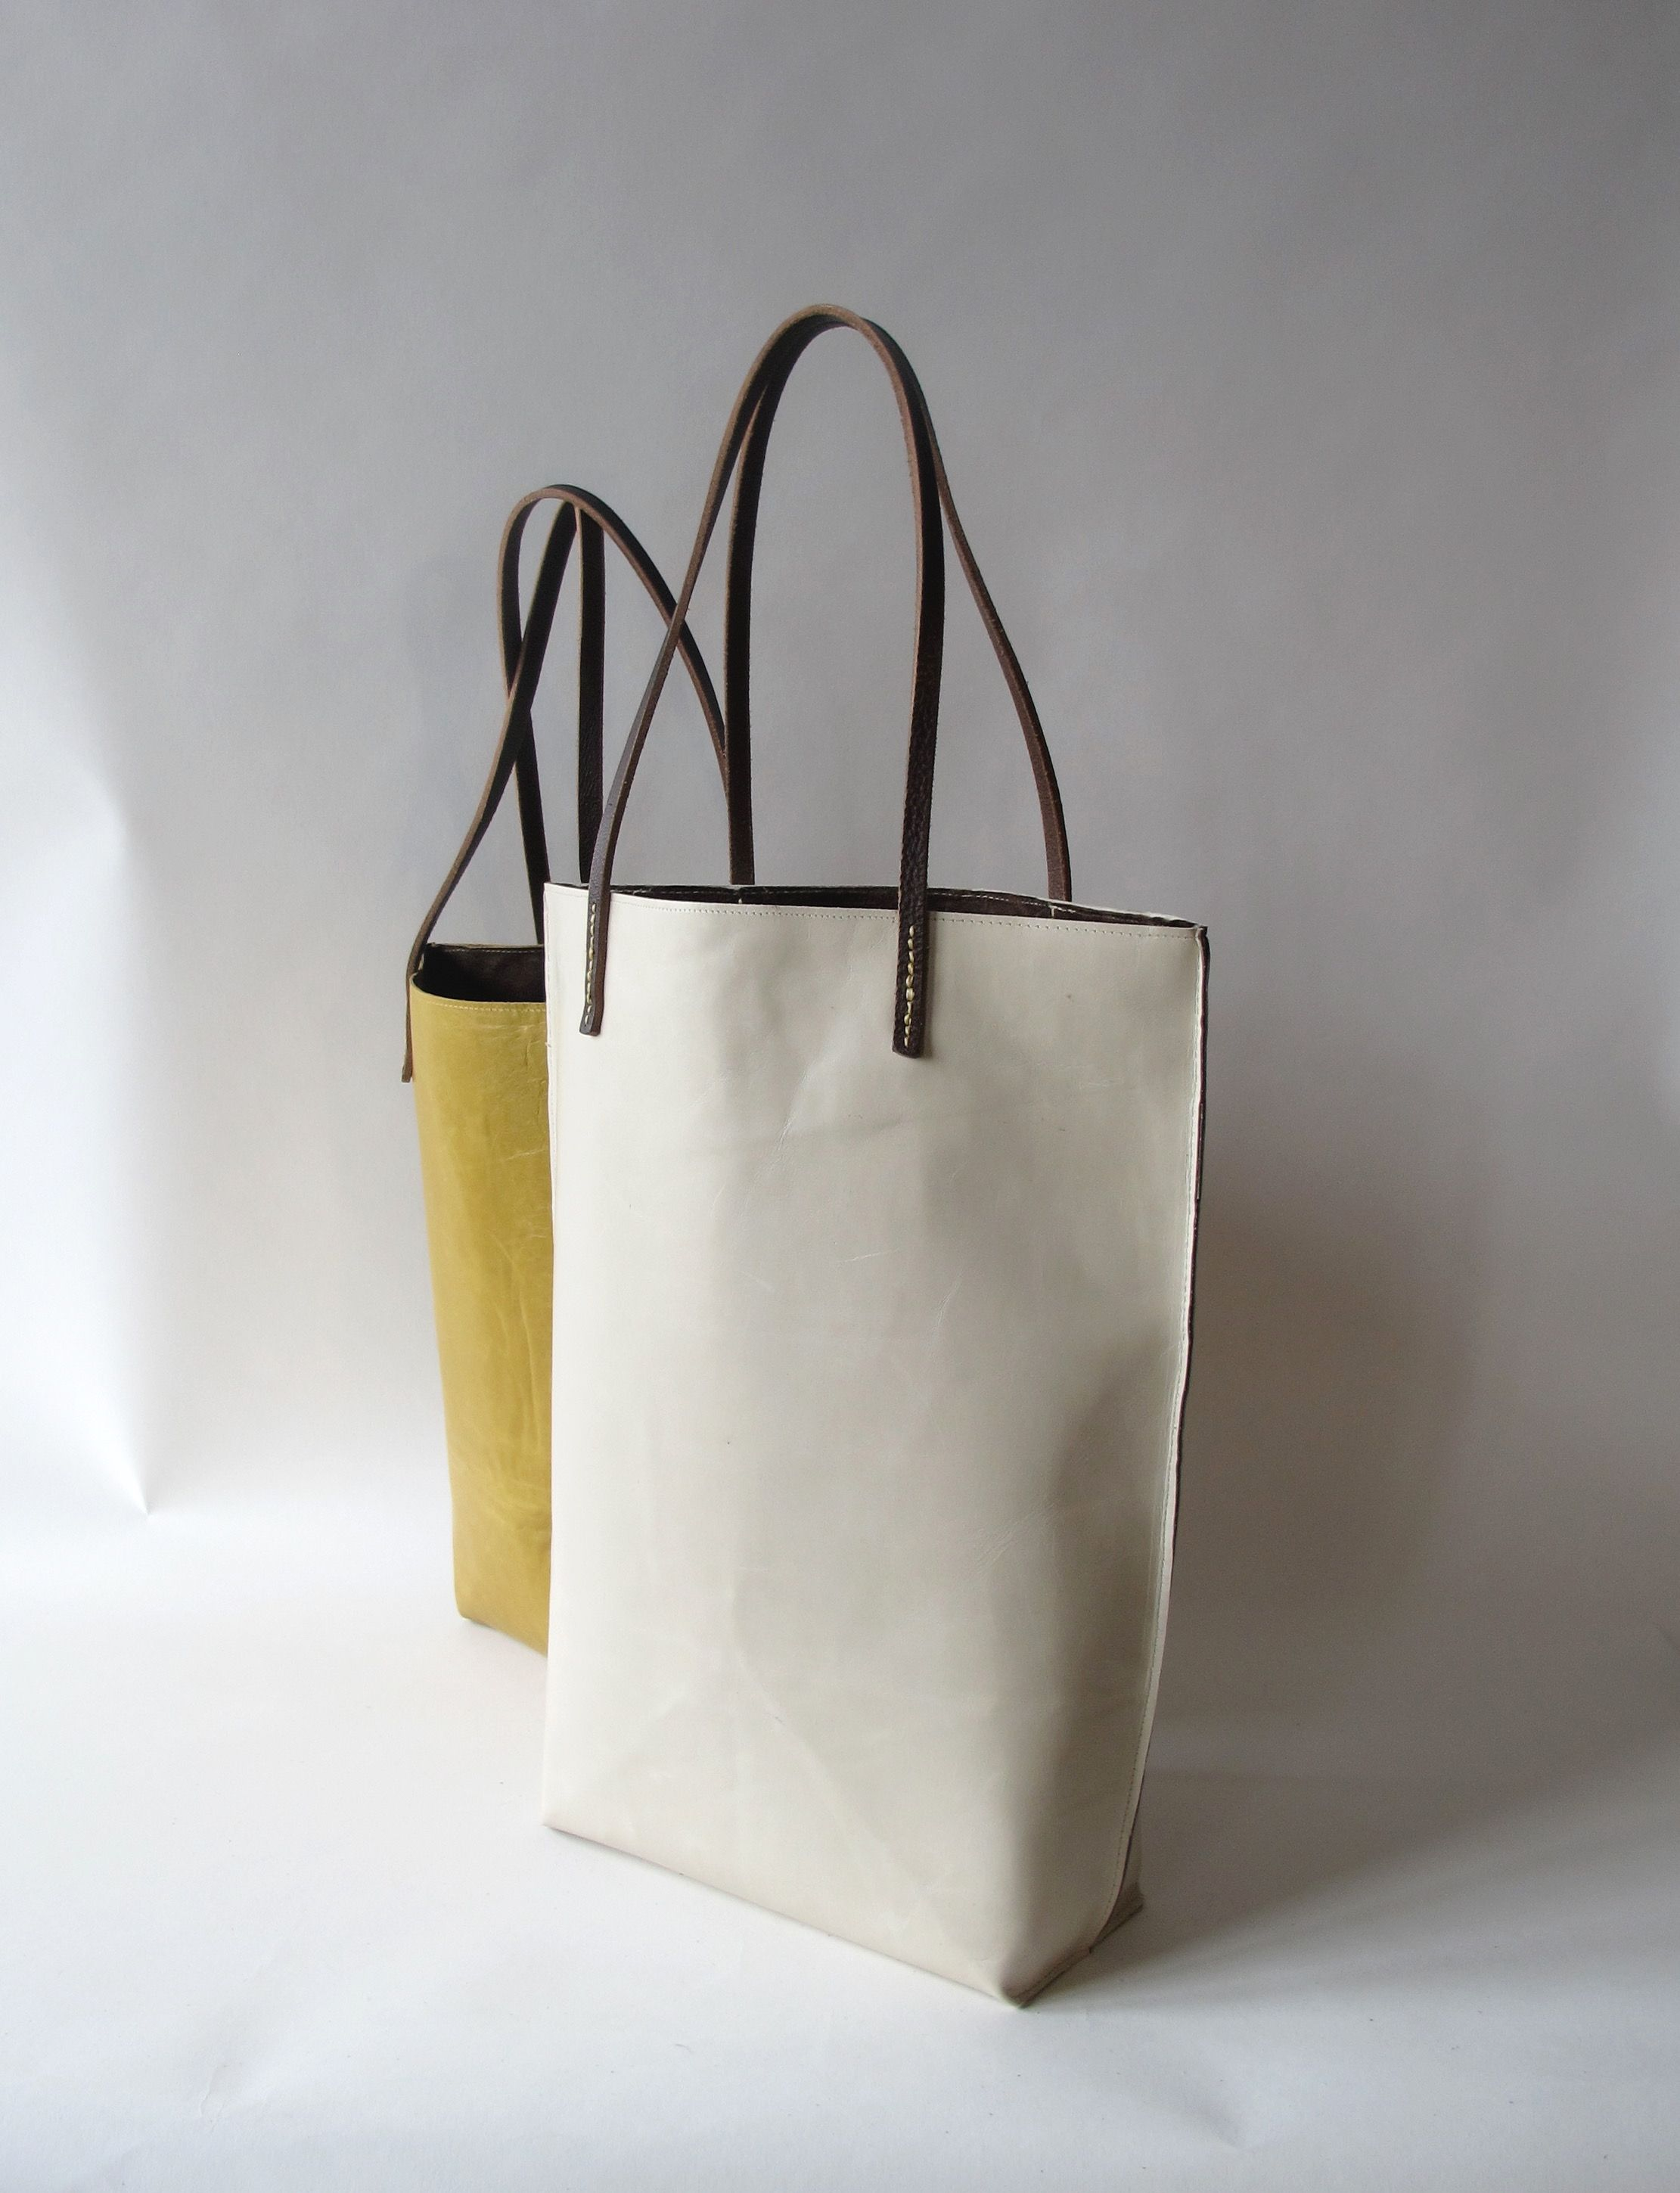 summer tote handmade leather tote amy kreiling bags white leather purse  wine bag commuter shoulder shopping bag eafc3ac6d3782